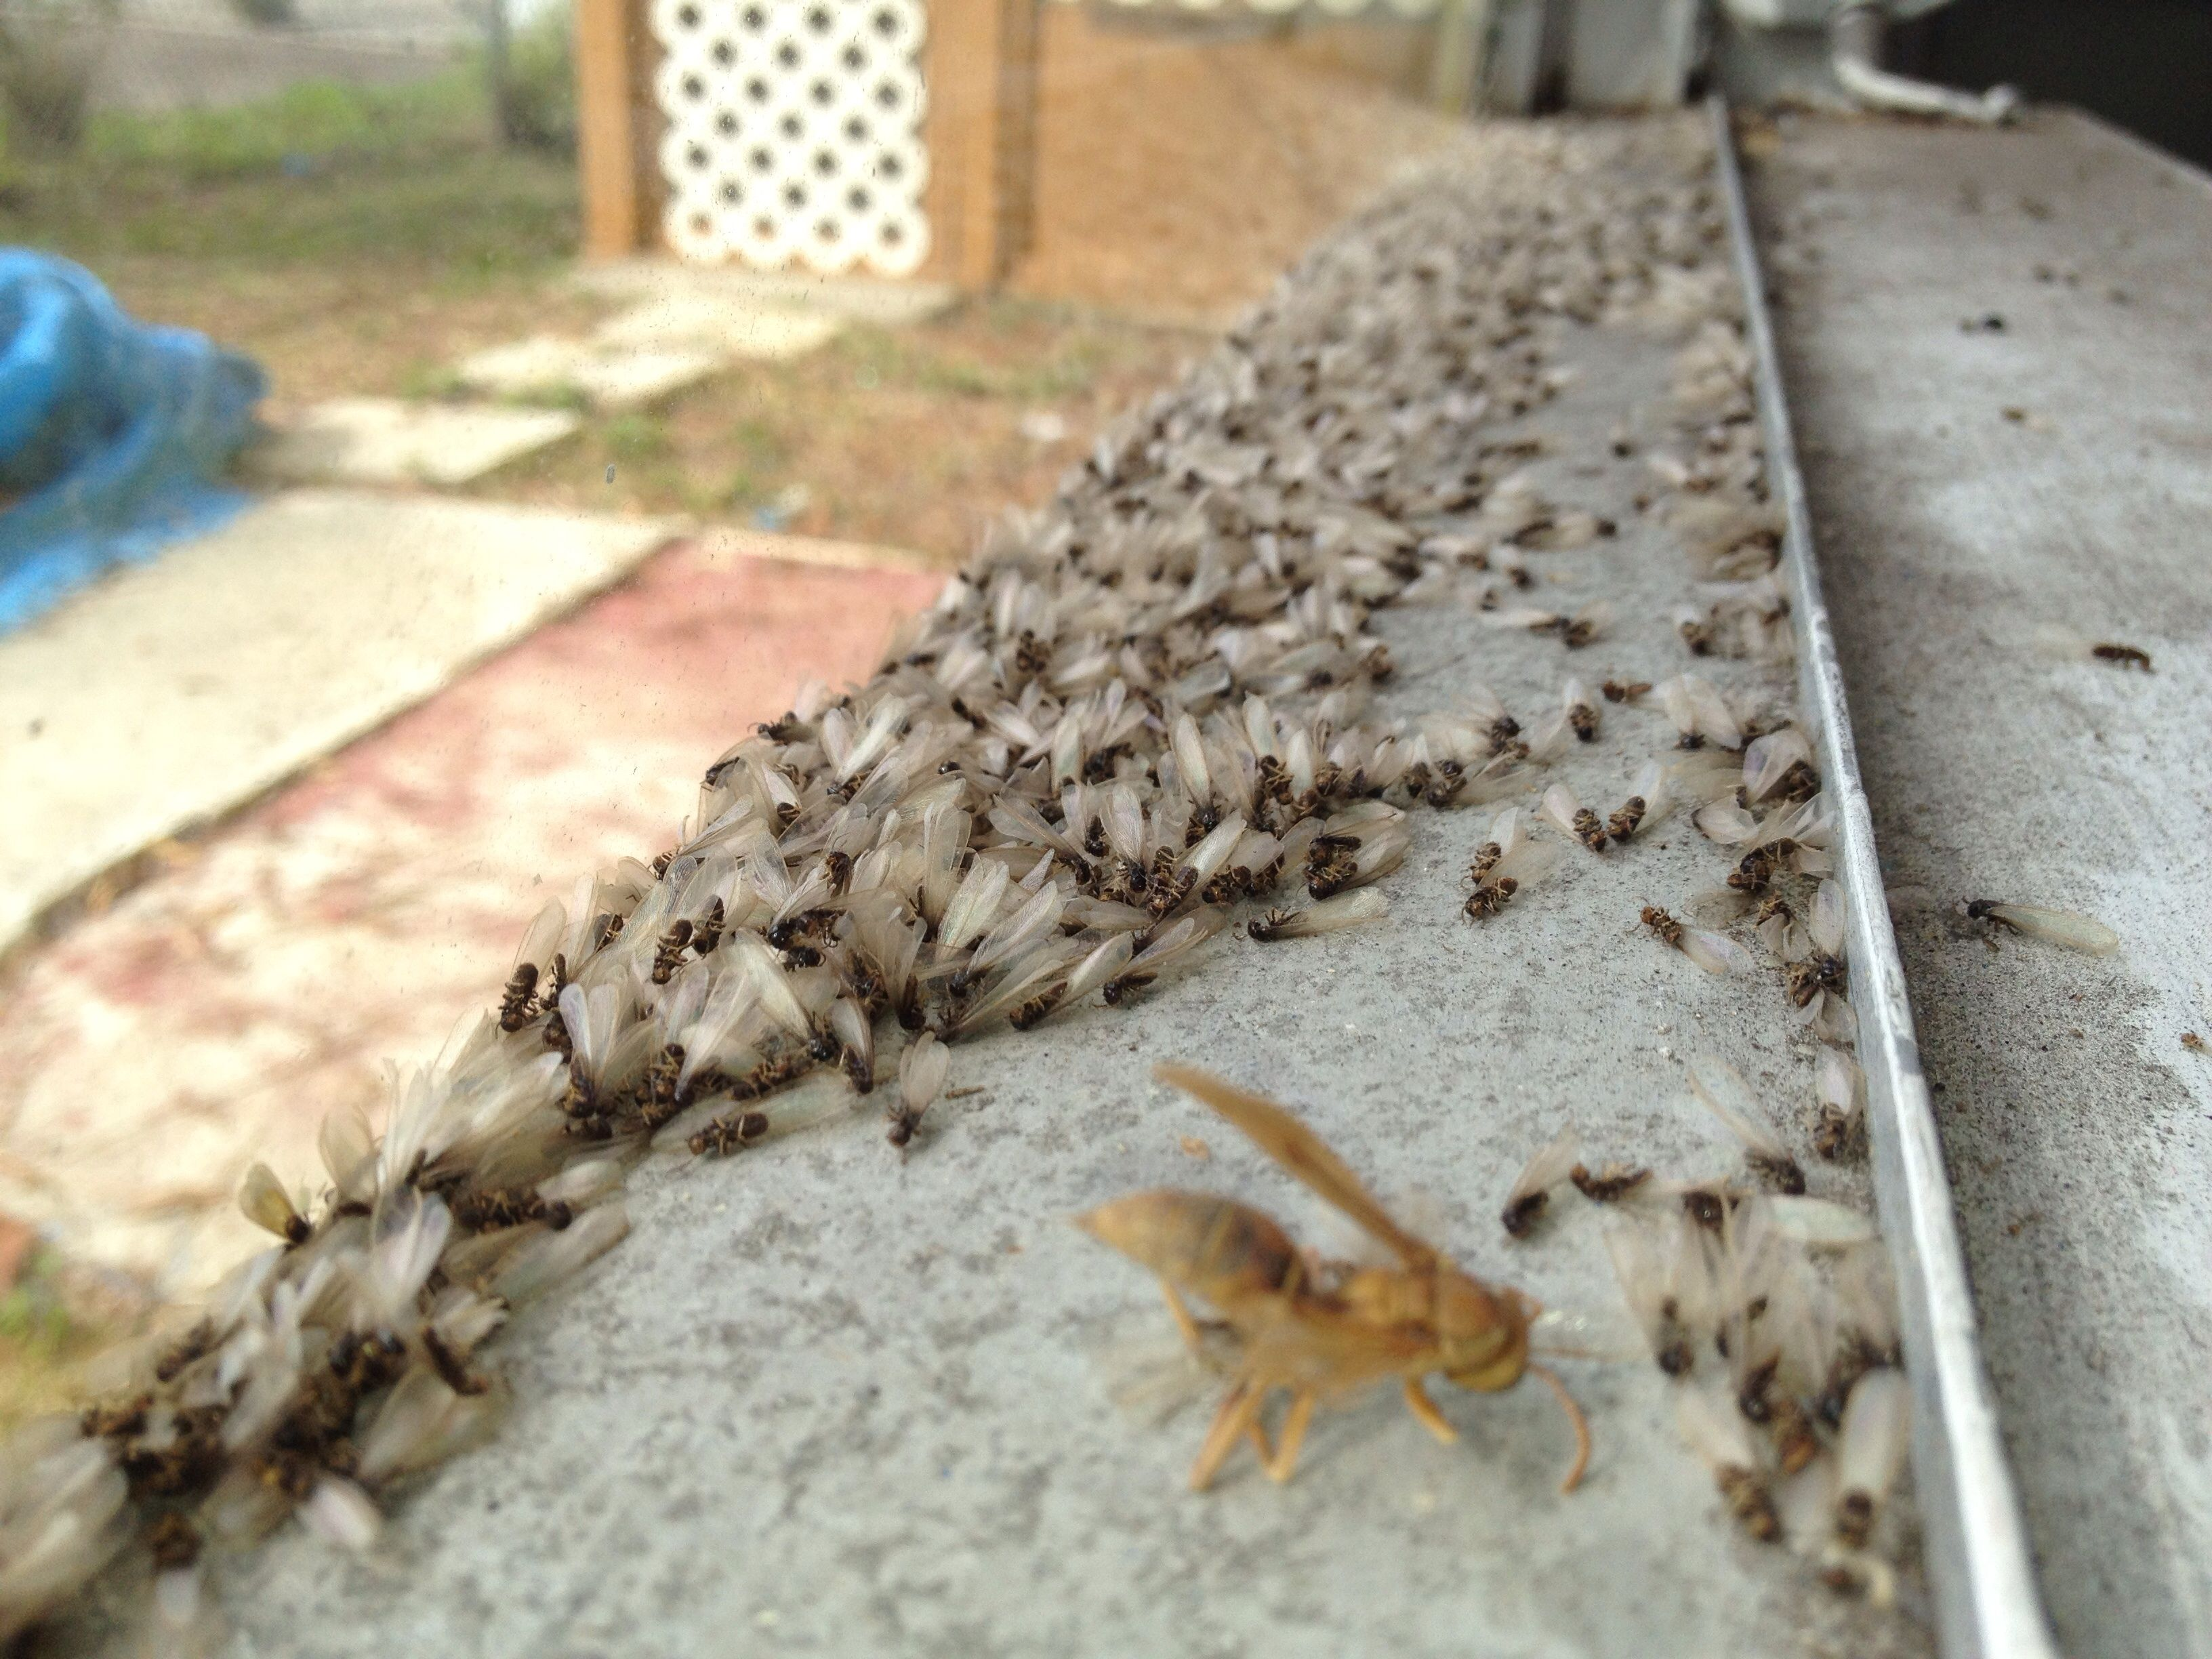 Pest Control Services Tampa Termite Exterminating Company